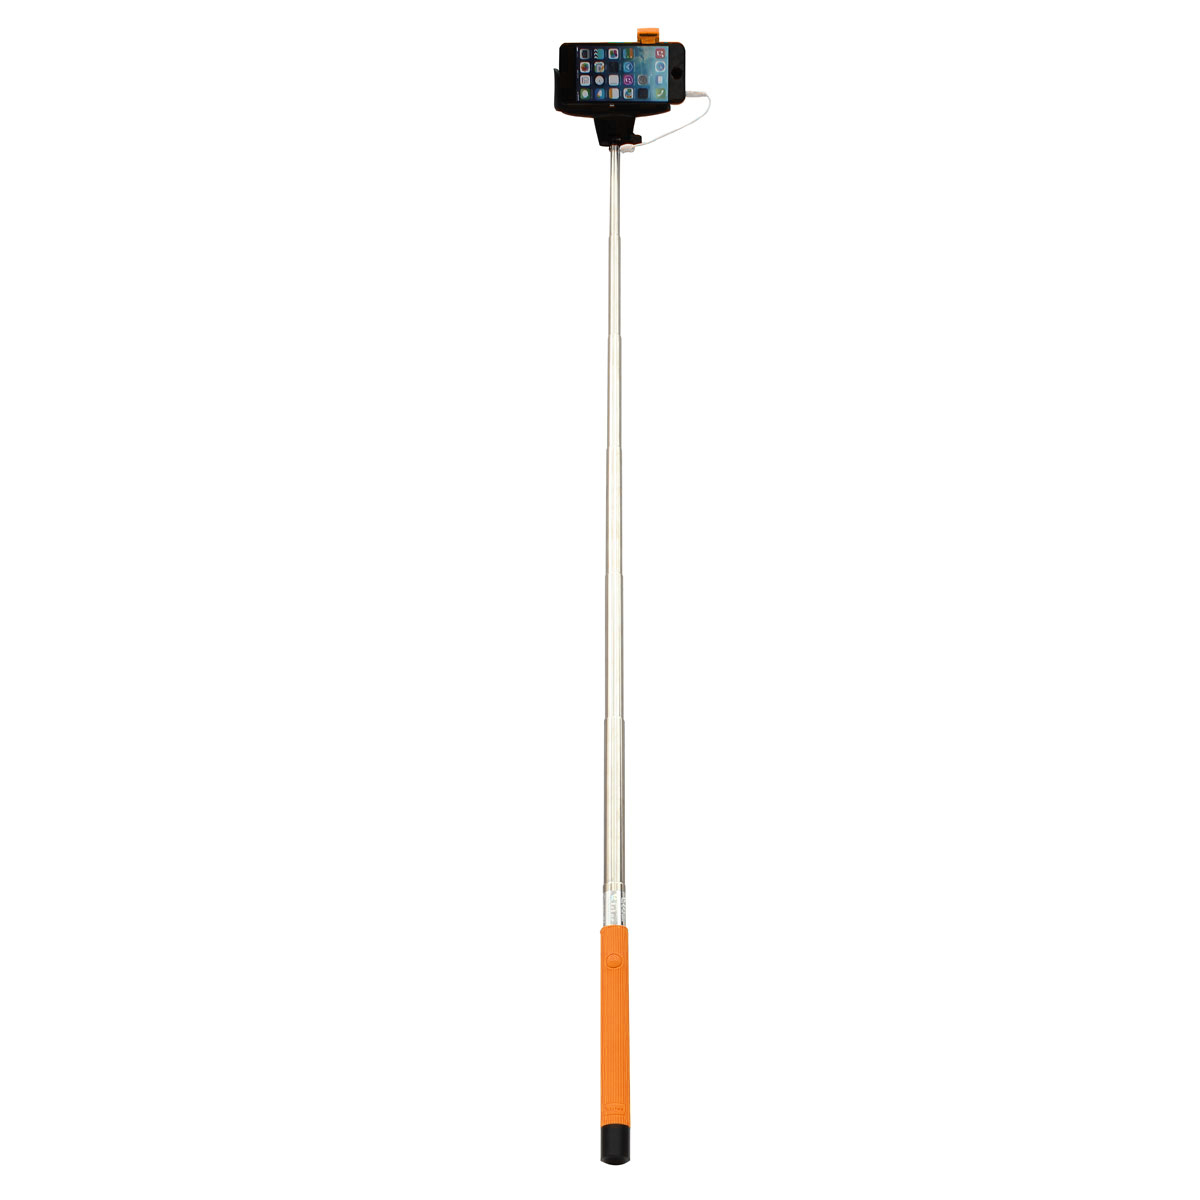 remote button wired handheld selfie stick monopod for iphone cellphone sony htc. Black Bedroom Furniture Sets. Home Design Ideas